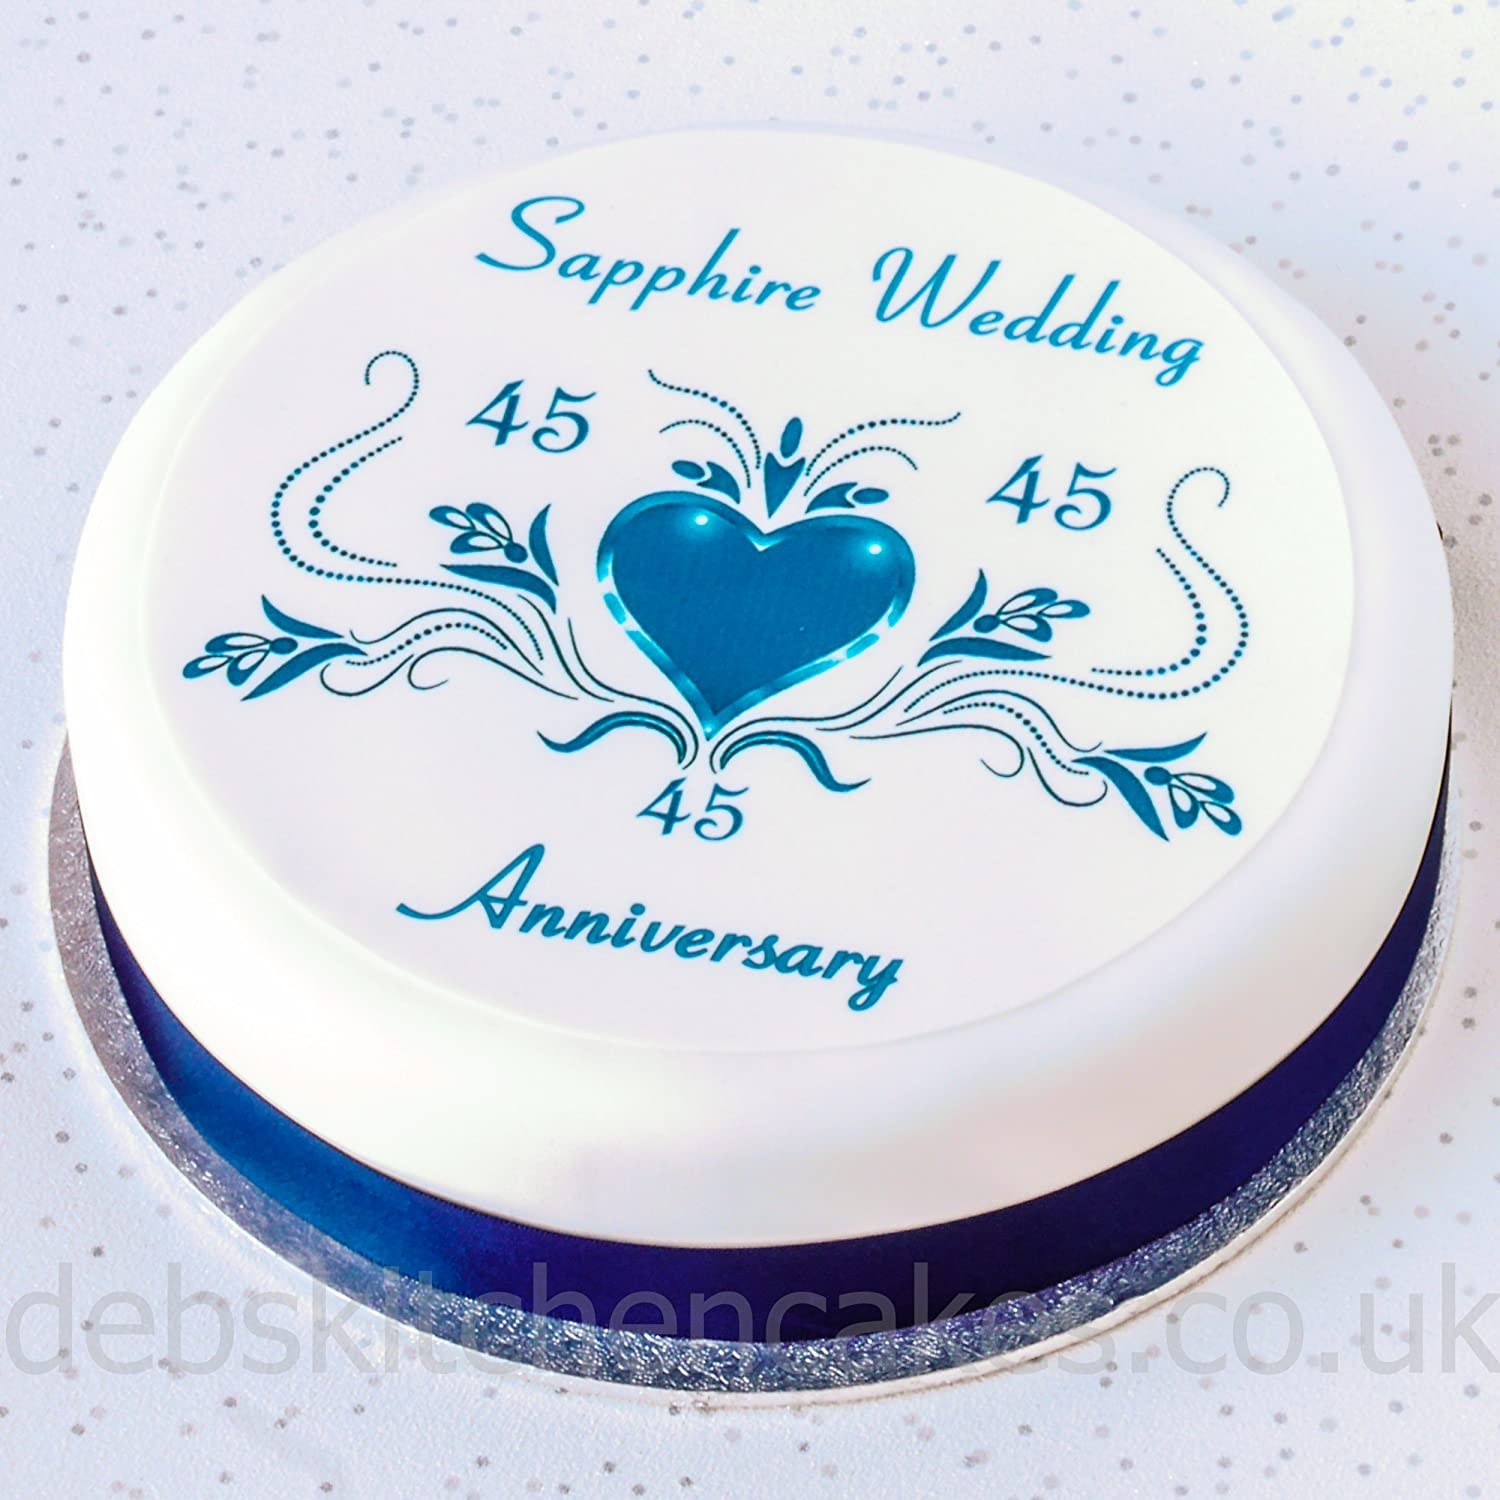 Sapphire Wedding Anniversary Cake Topper   45th Anniversary Cake Decoration    Round Icing Or Wafer (Icing): Amazon.co.uk: Grocery